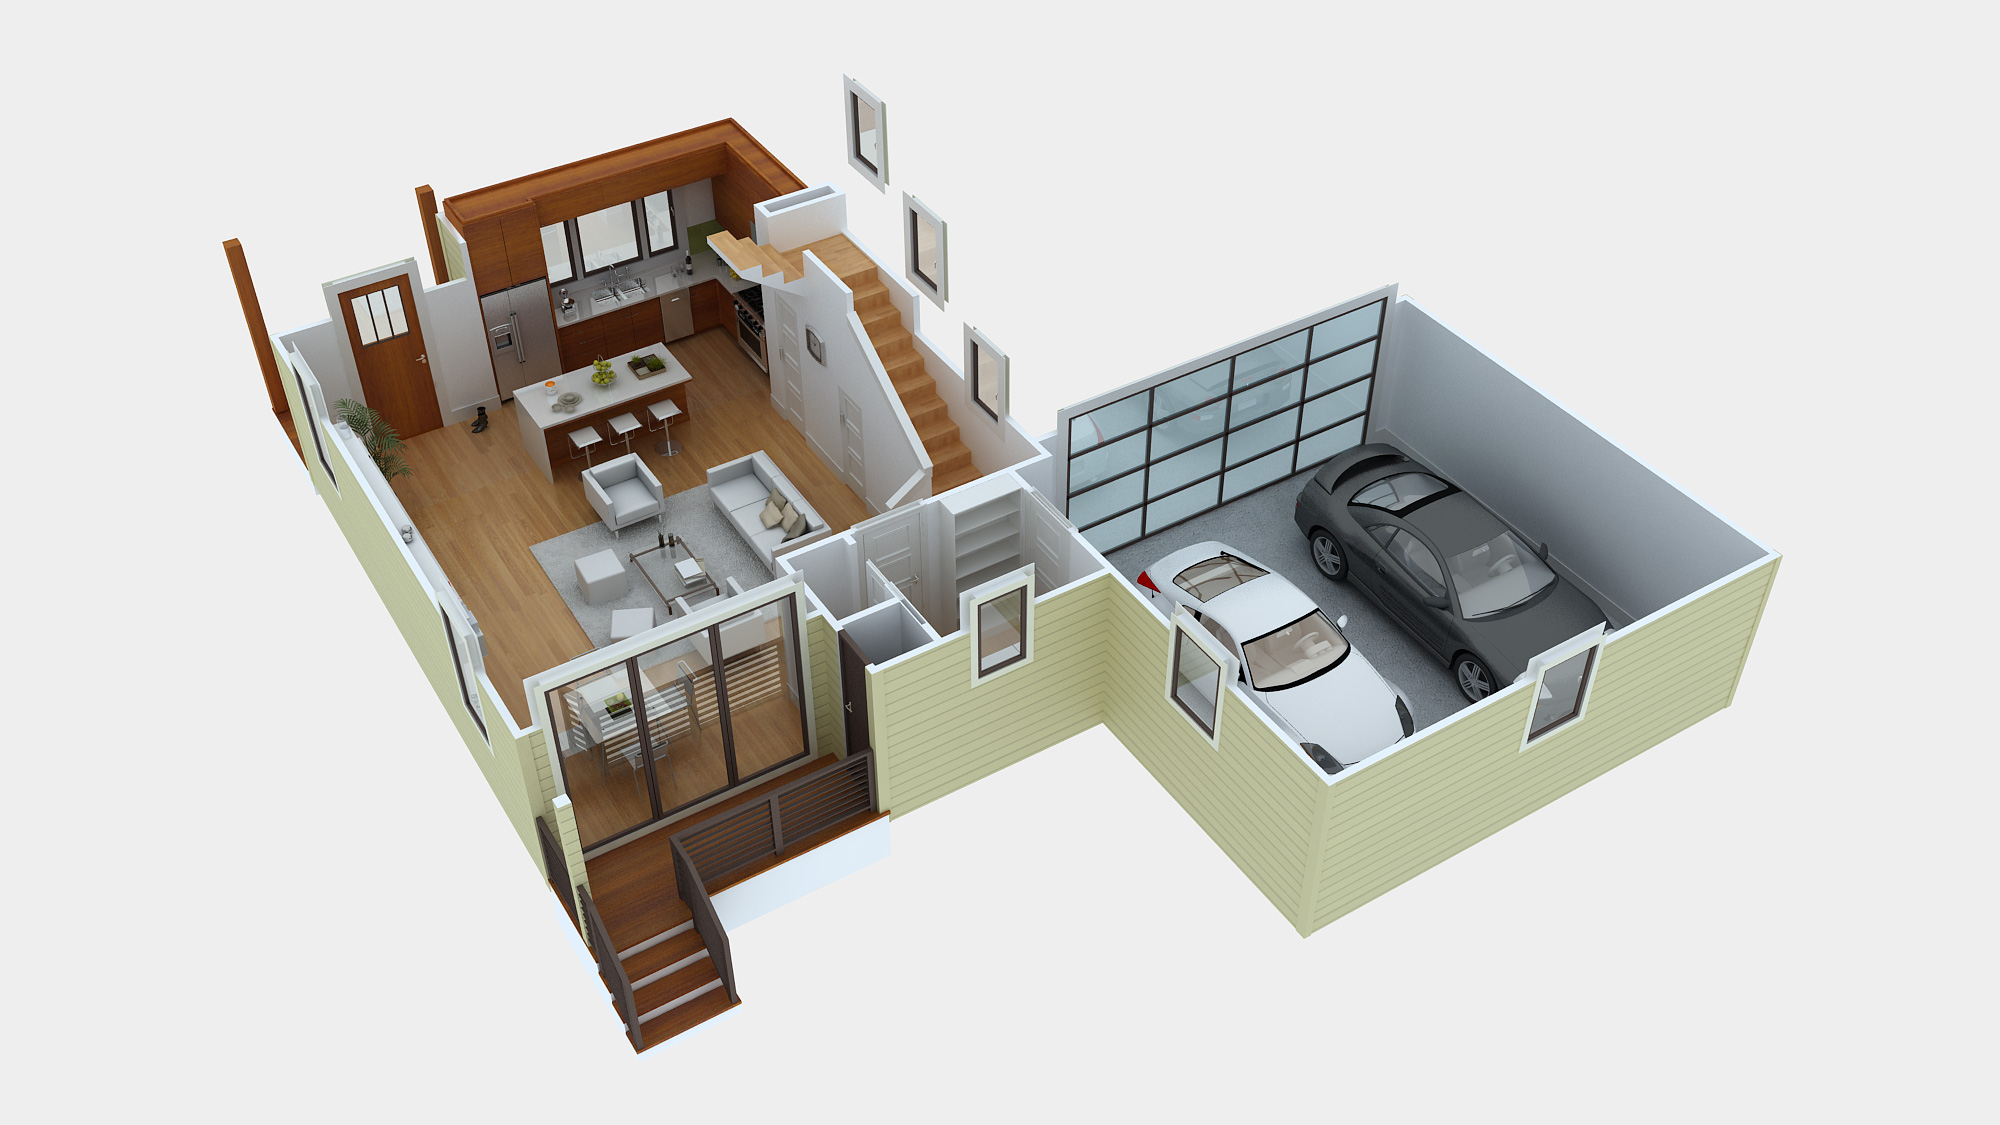 South Park Floorplans in 3D